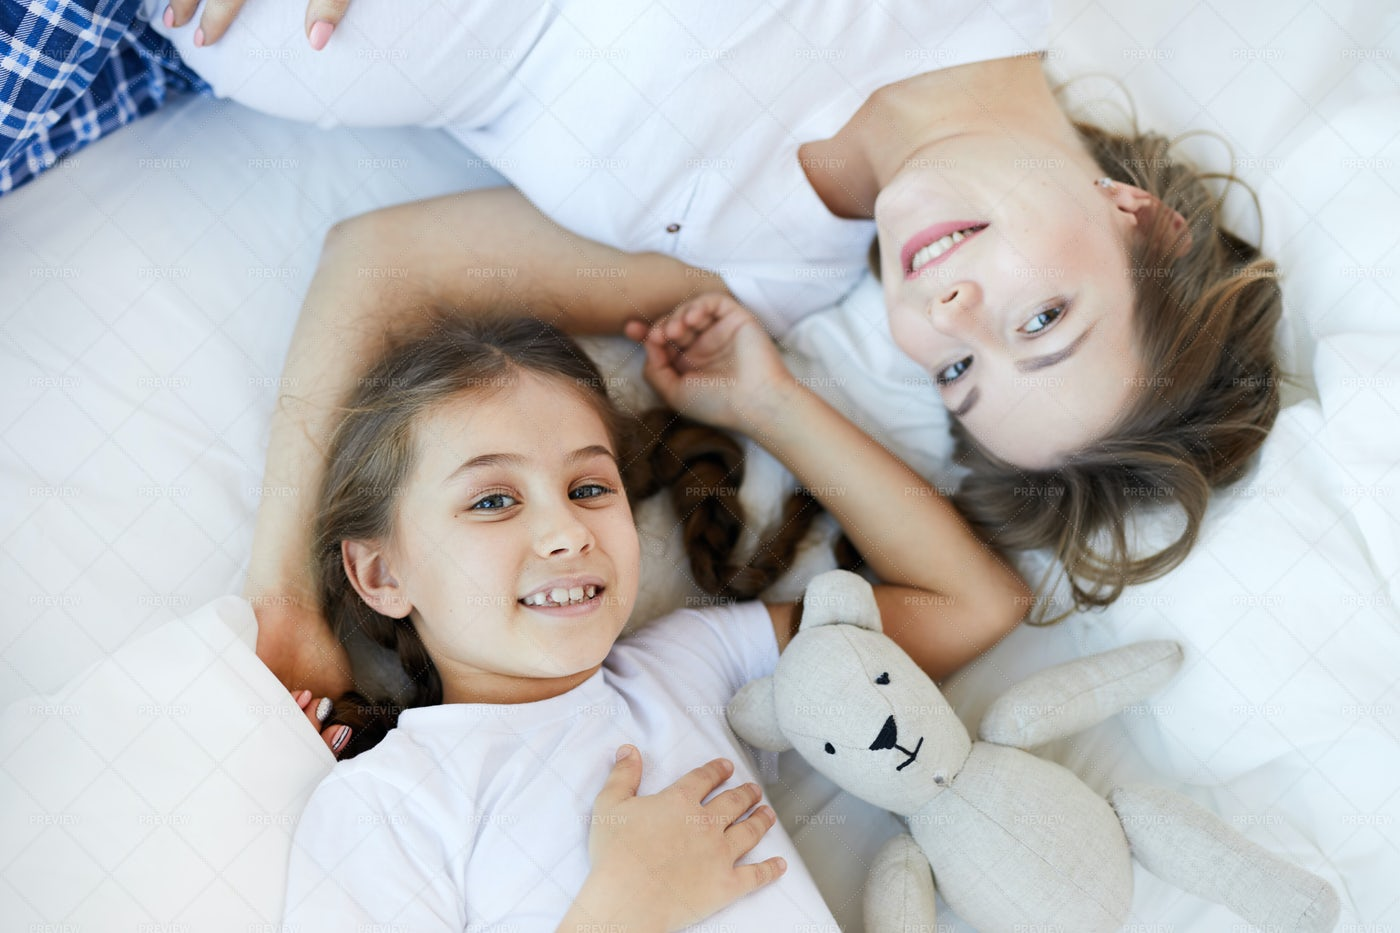 Mother And Child On Bed Above View: Stock Photos